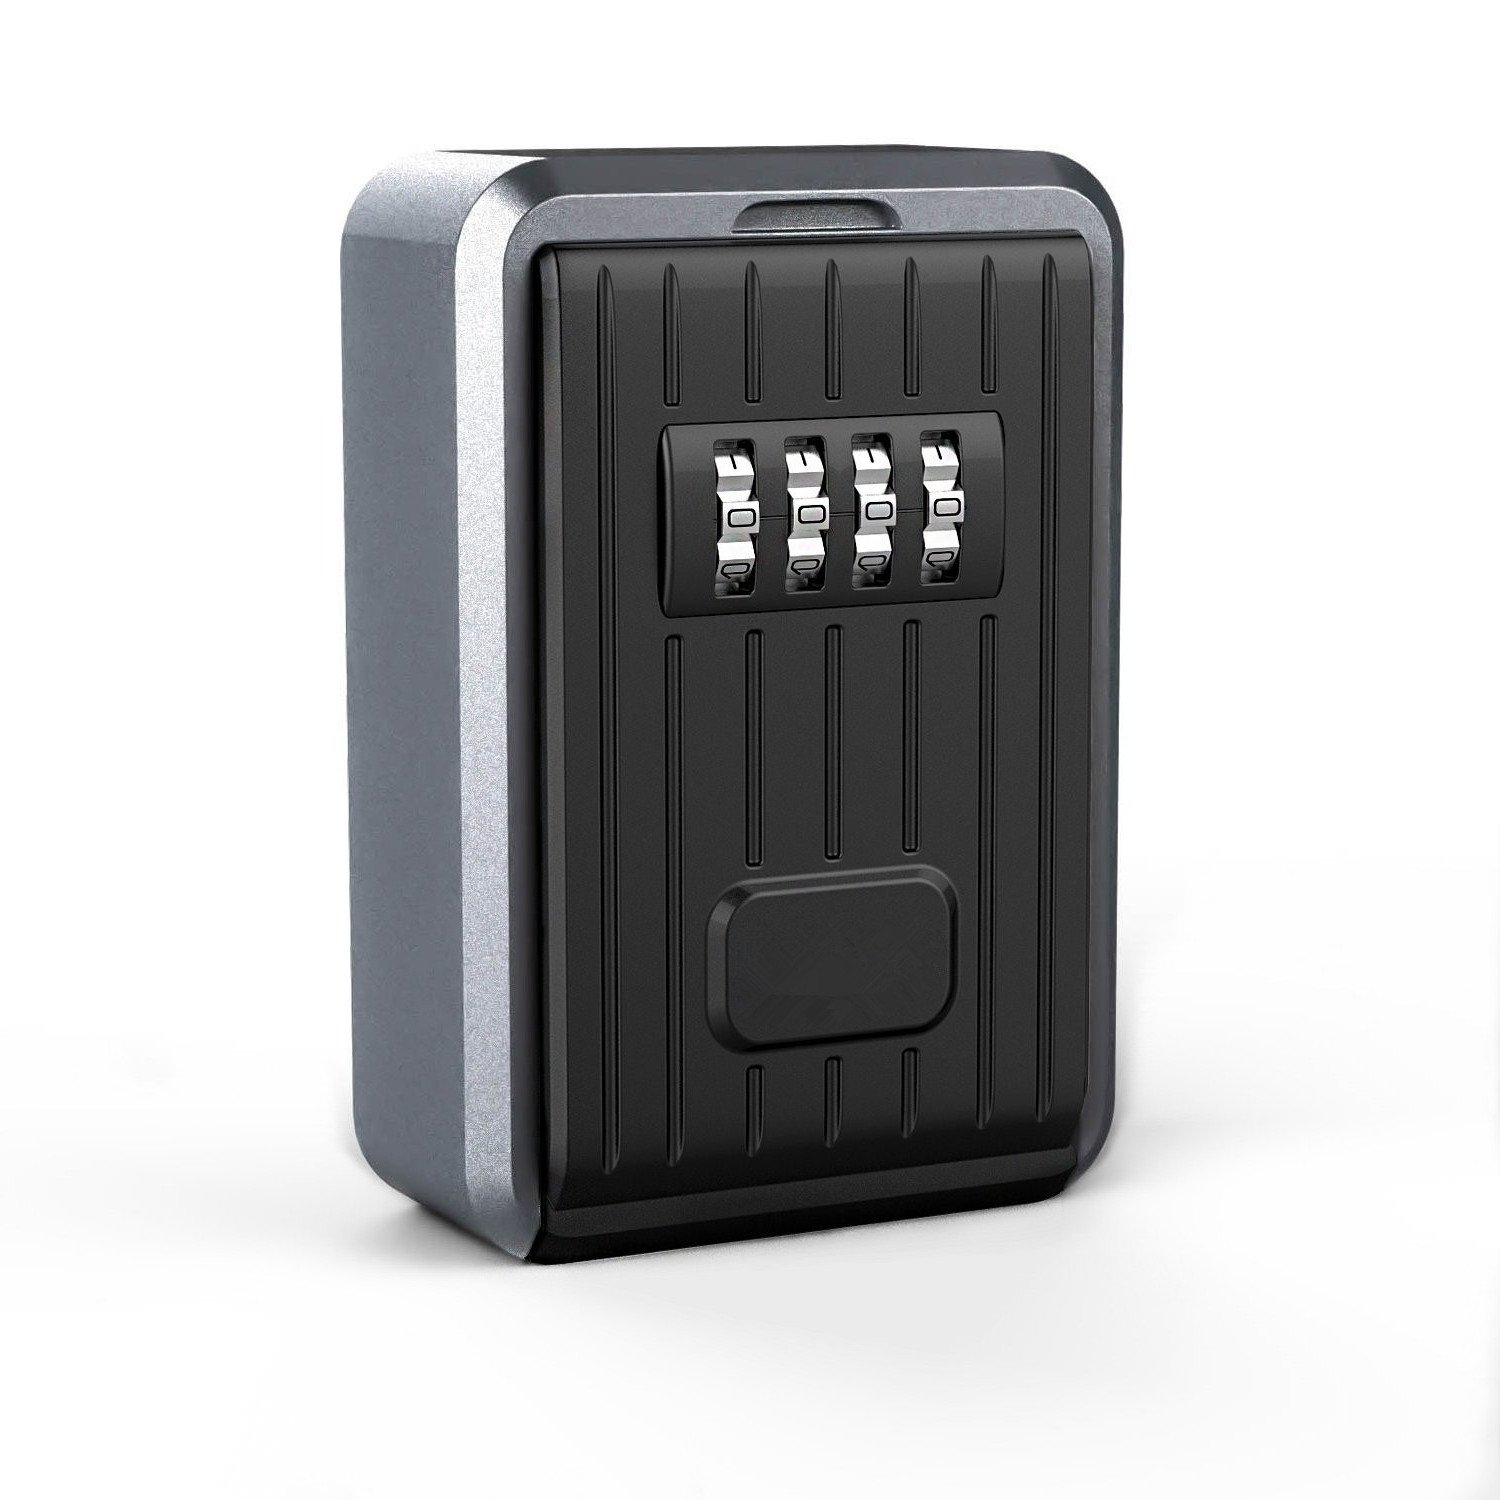 Key Lock Box , Wall Mounted Large Capacity Key Safe 4 Digit Combination Key Storage Lock Box